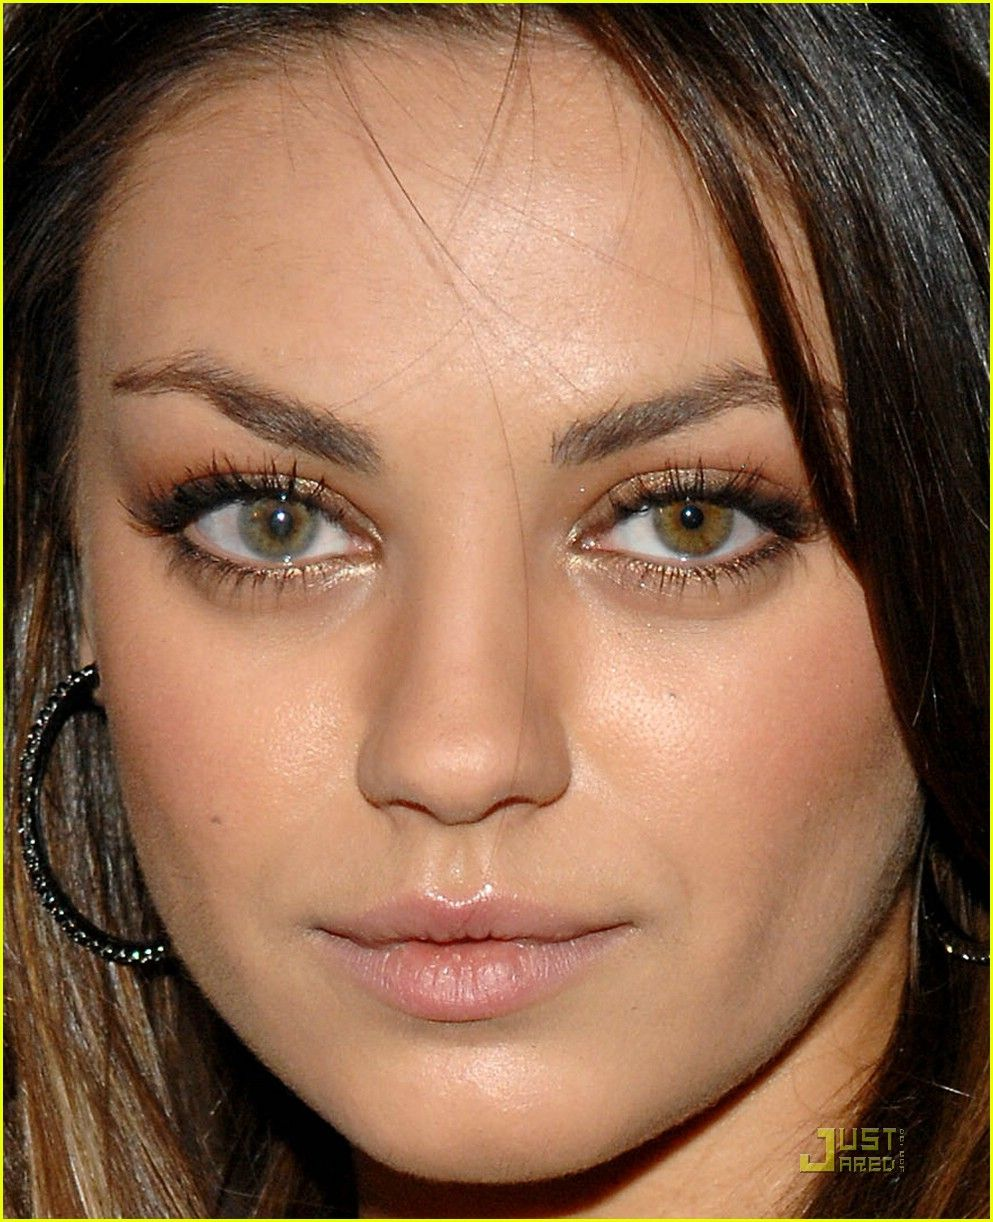 Pin By Amanda Lewis On Make Up Mila Kunis Mila Kunis Eyes Fake Celebrities